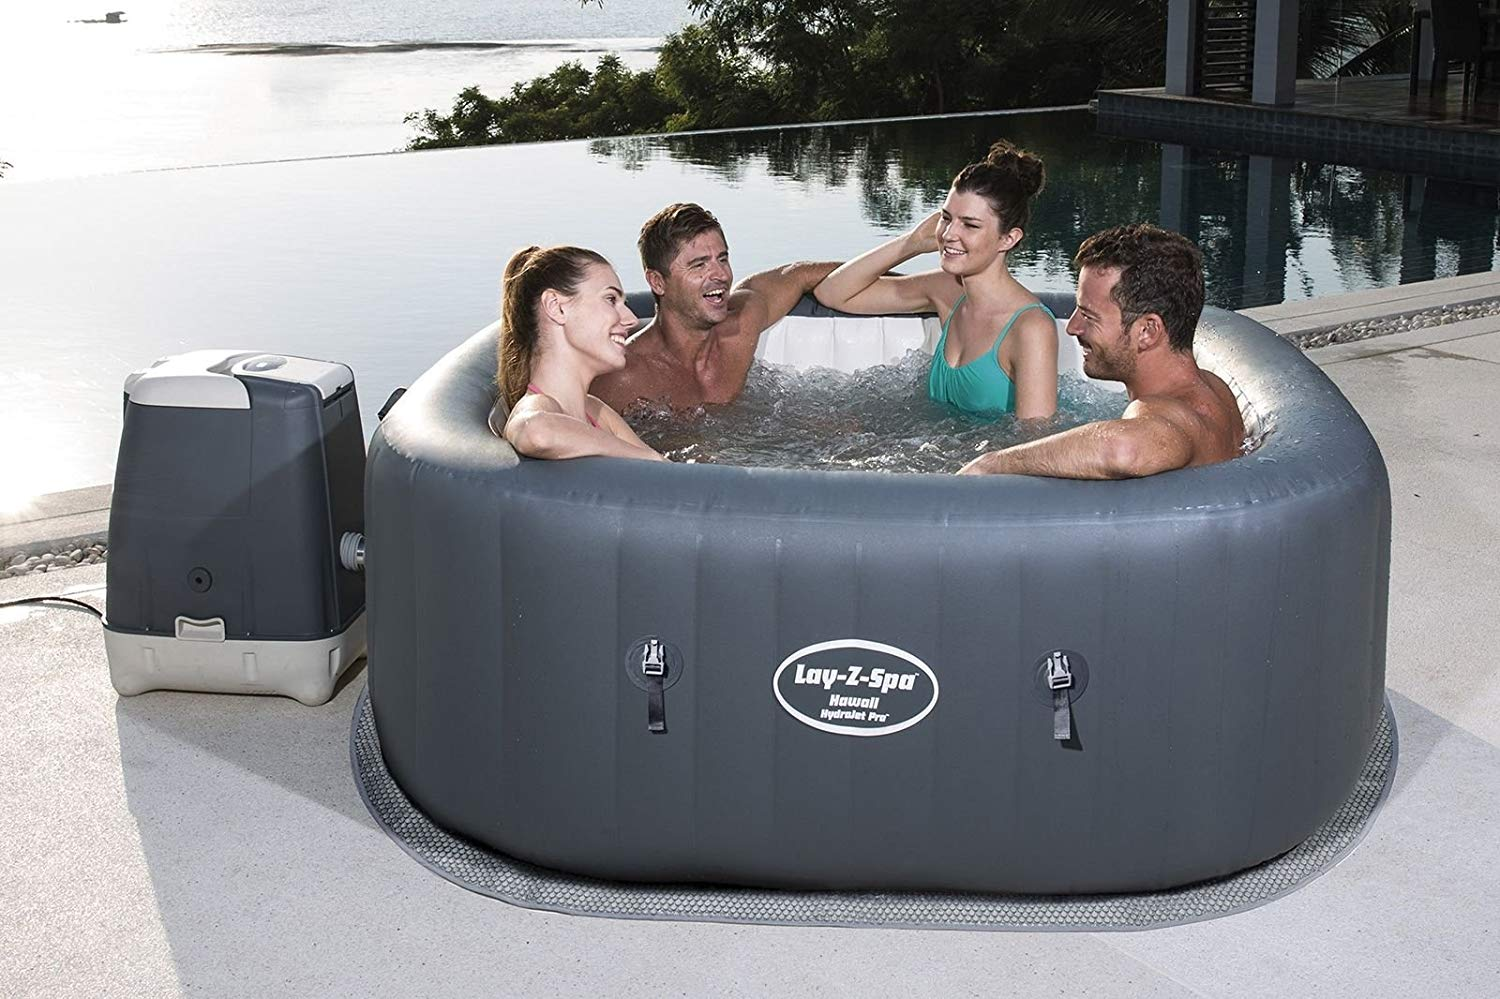 Jacuzzi Bestway Lay-Z-Spa Hawaii HydroJet Pro